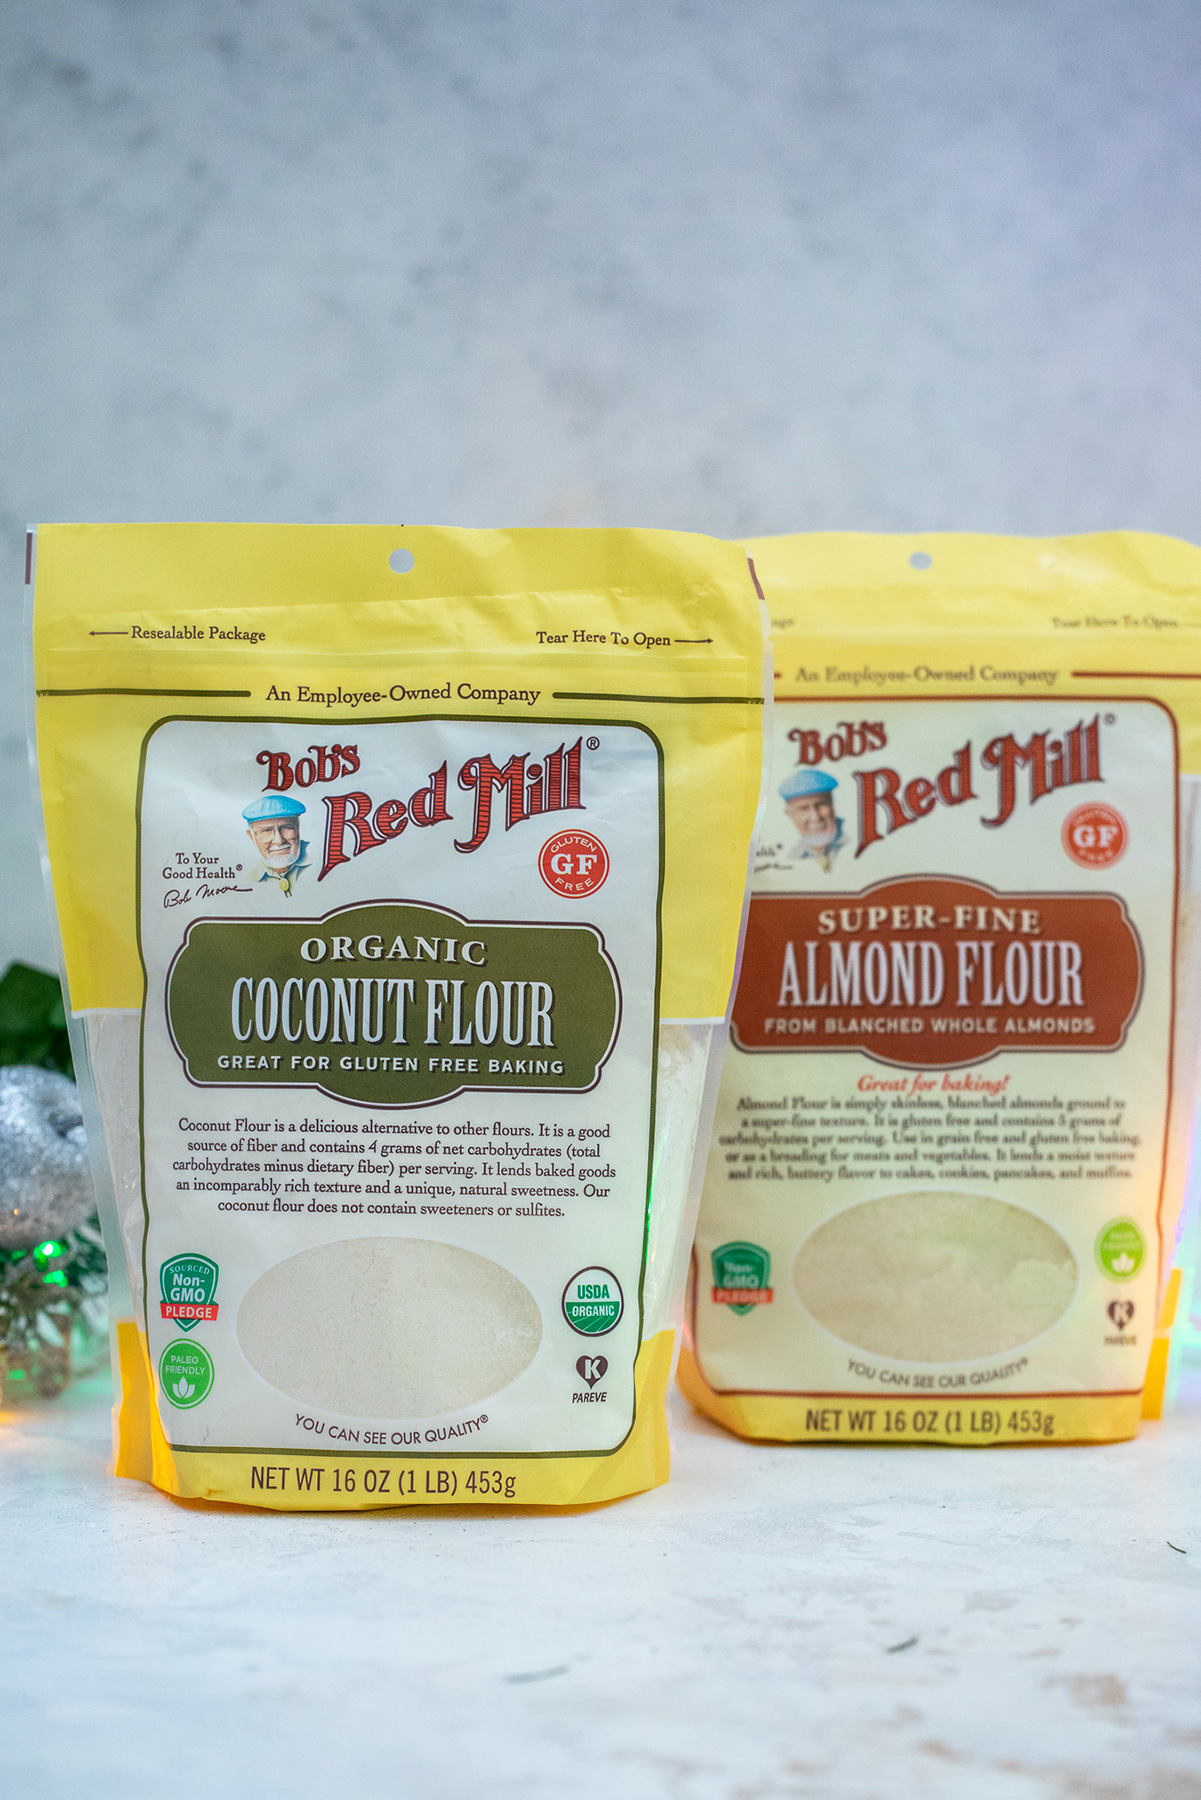 coconut flour bag and almond flour bag